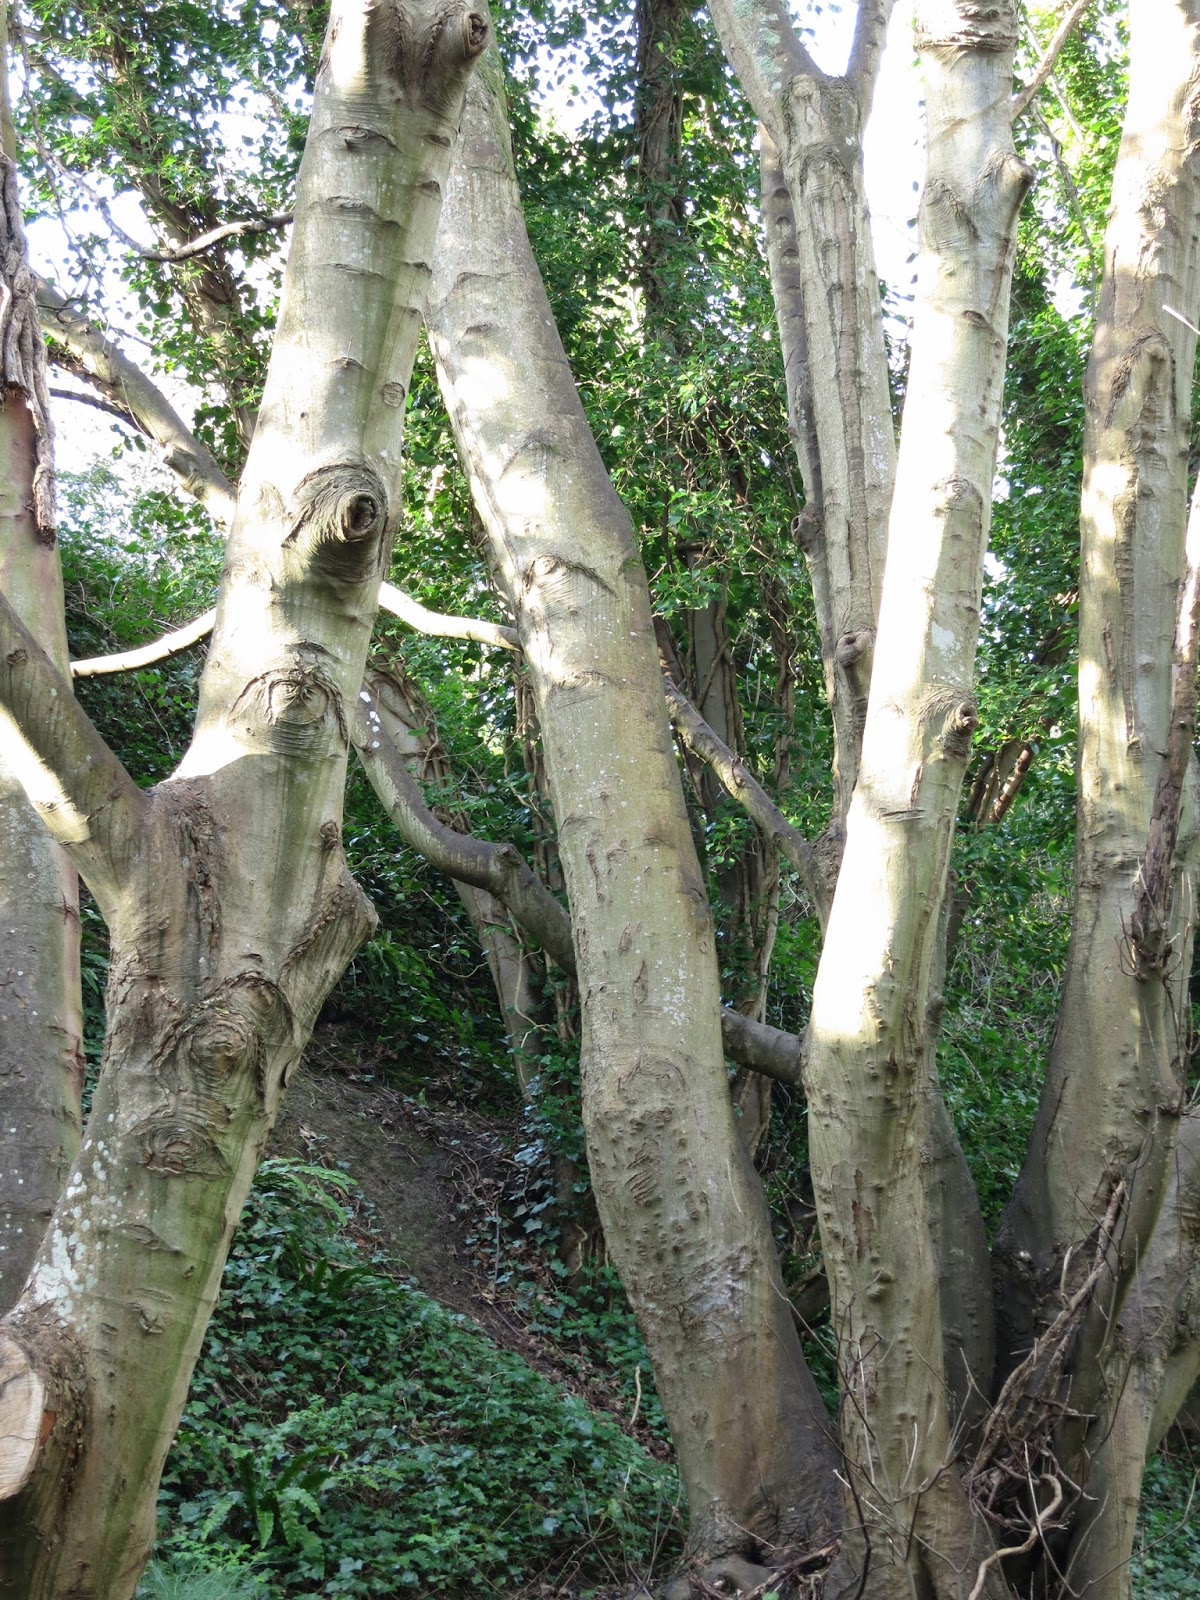 Trunks of sycamores without leaves on bank with ferns and ivy.